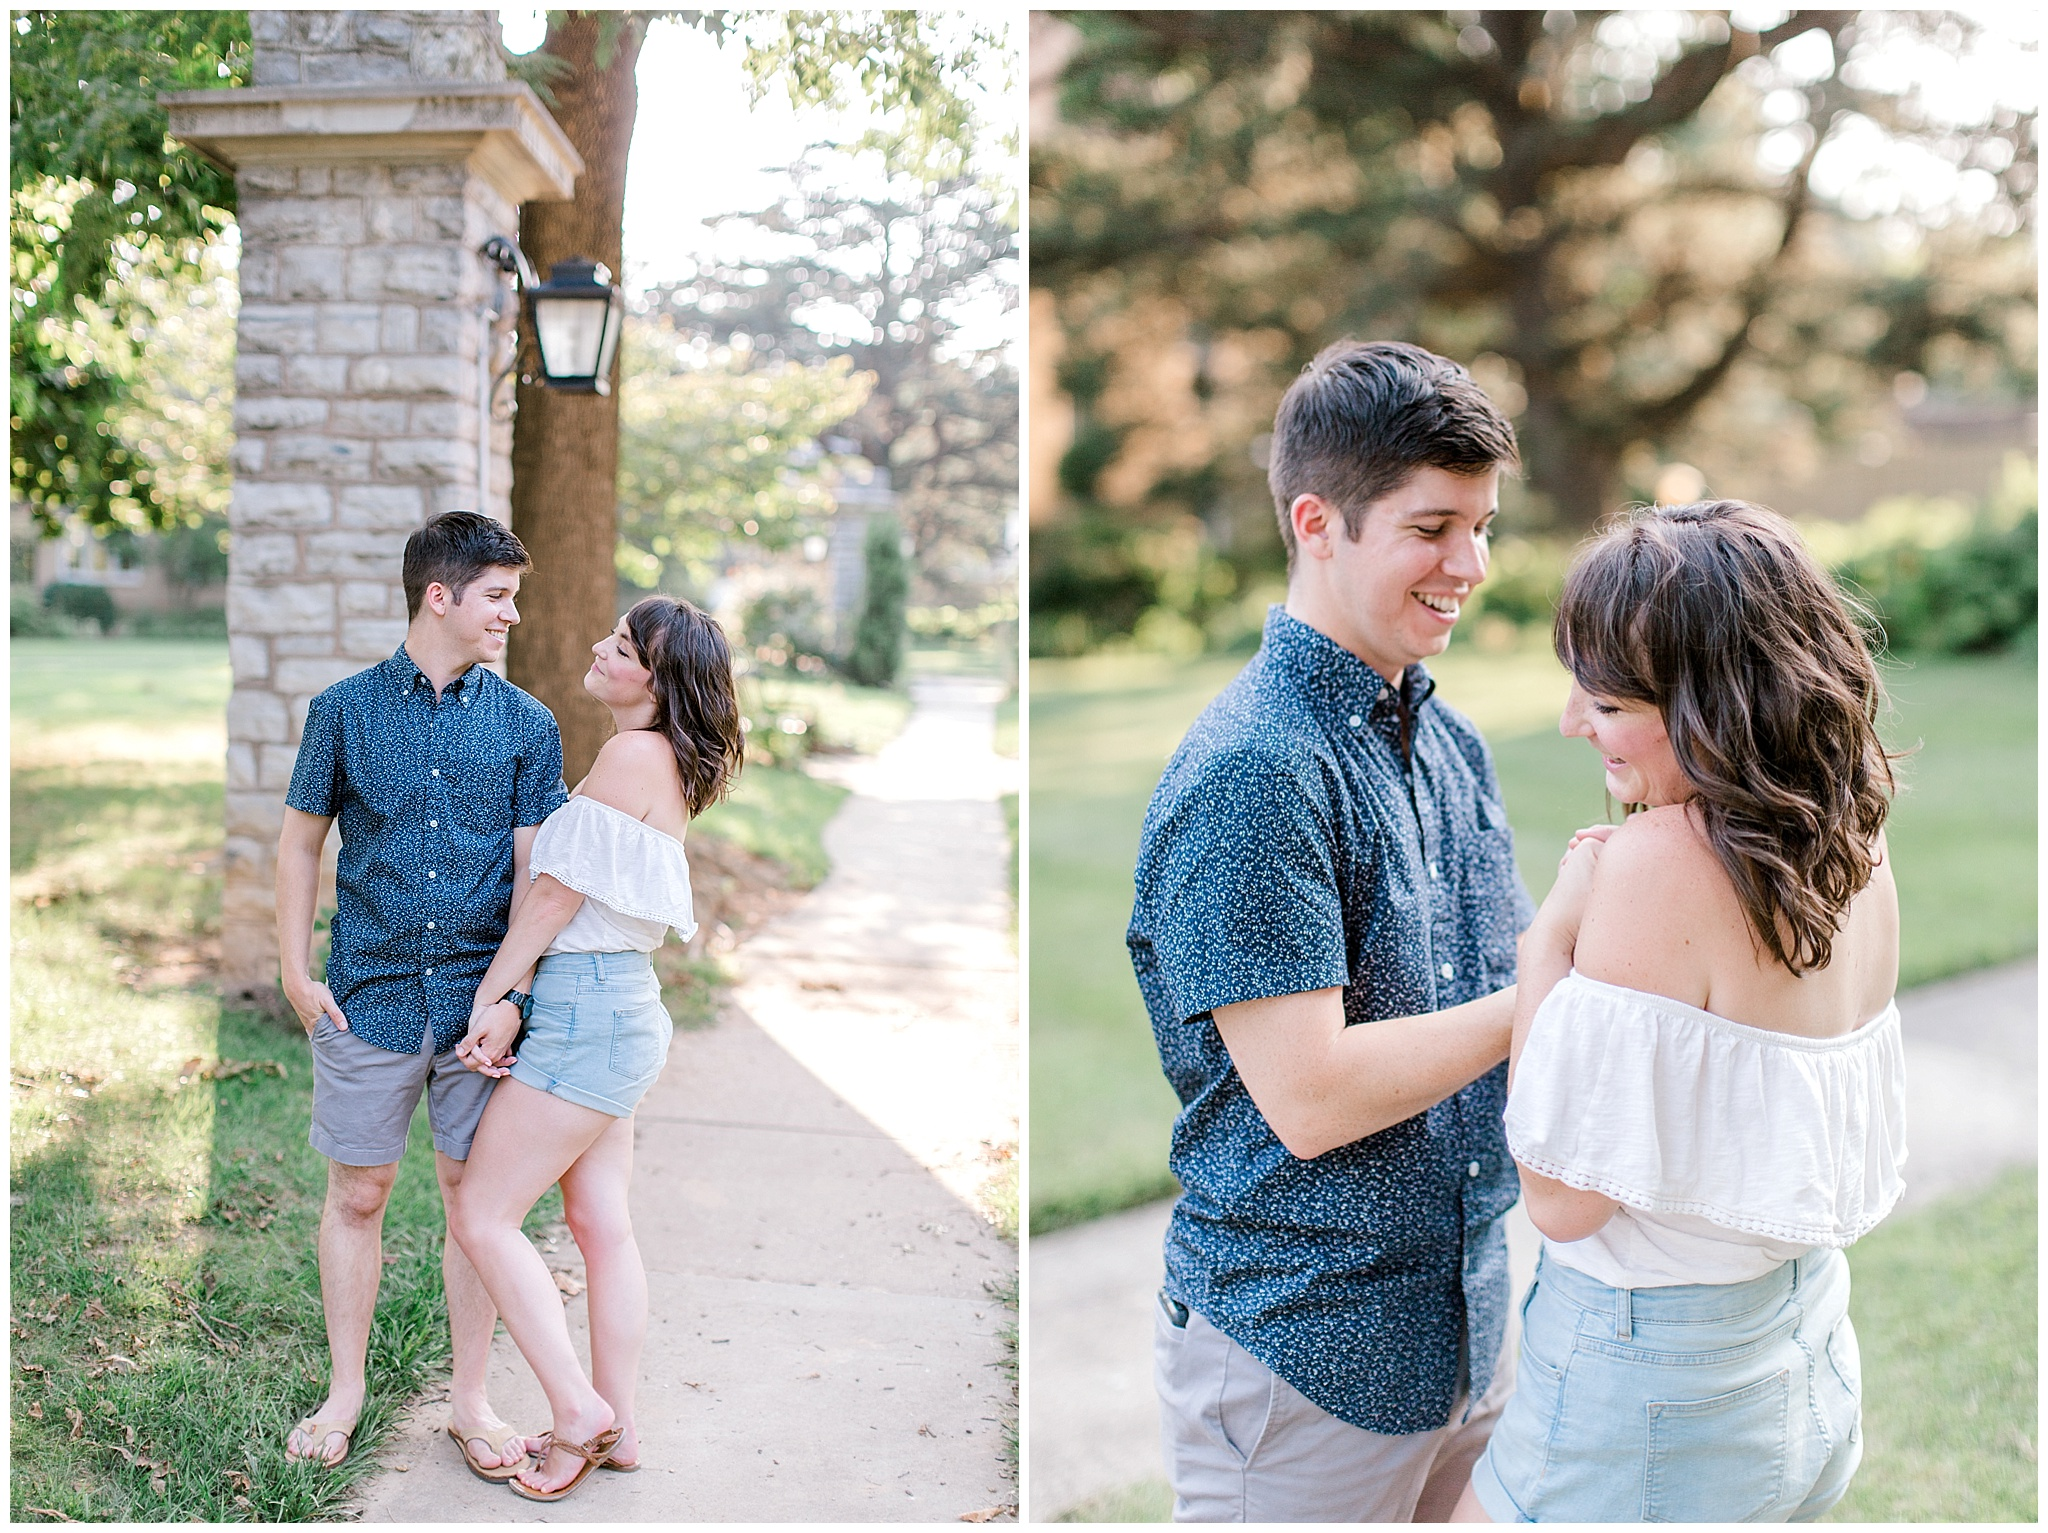 Frederick Engagement Photographer, Frederick Wedding Photographer, Frederick Engagement Photography, Frederick Maryland